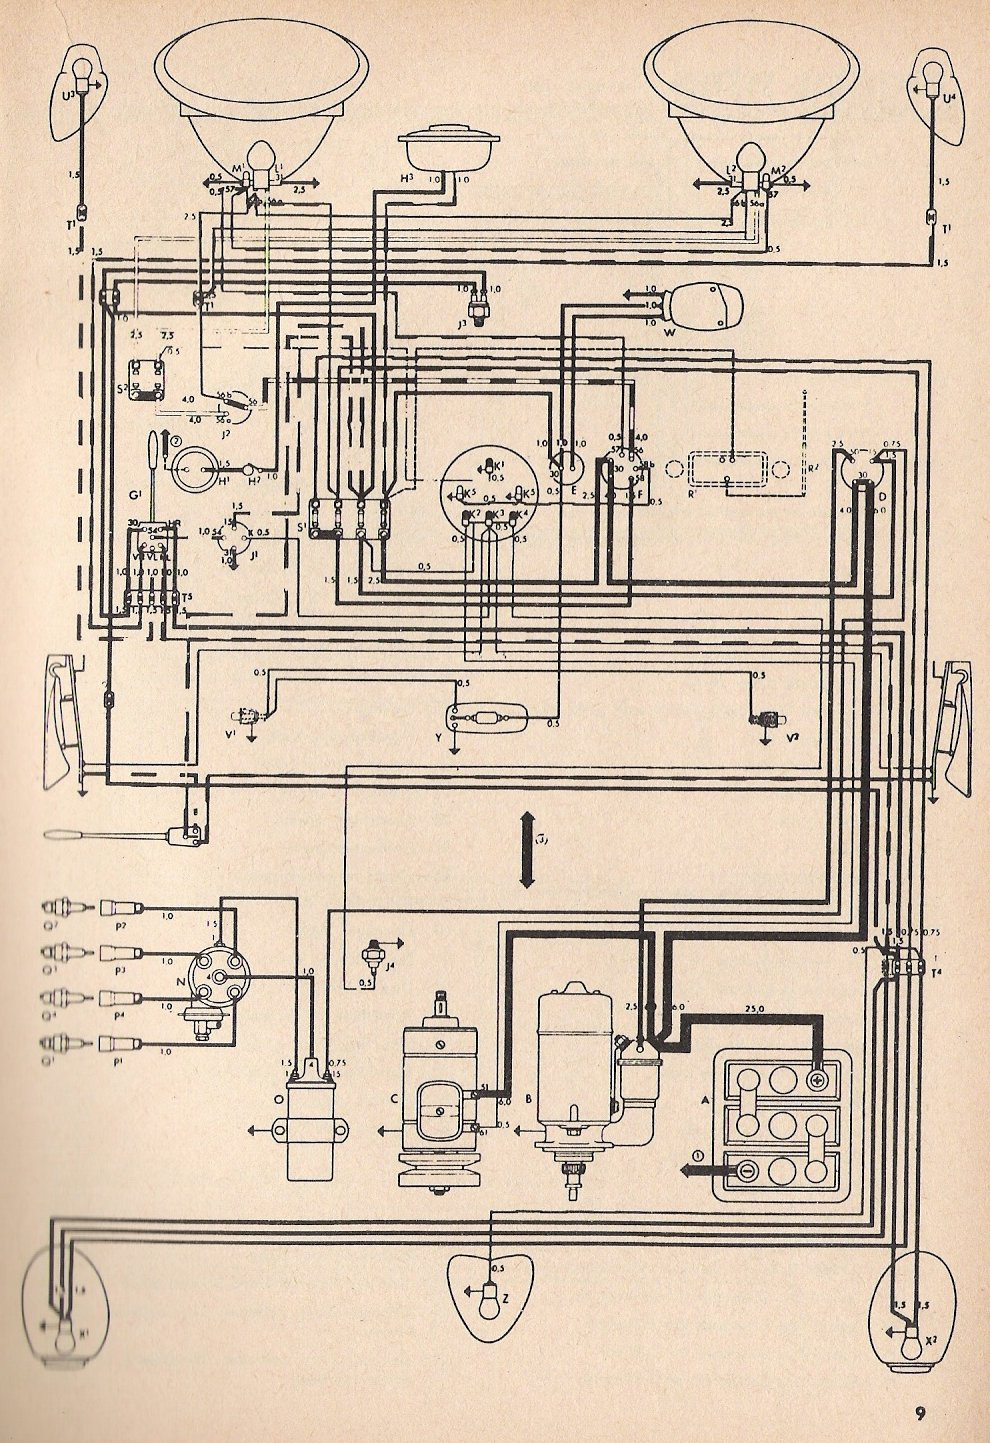 1971 Volkswagen Wiring Diagram Circuit Schema Ford Au Ignition Thesamba Com Type 1 Diagrams 1969 Firebird